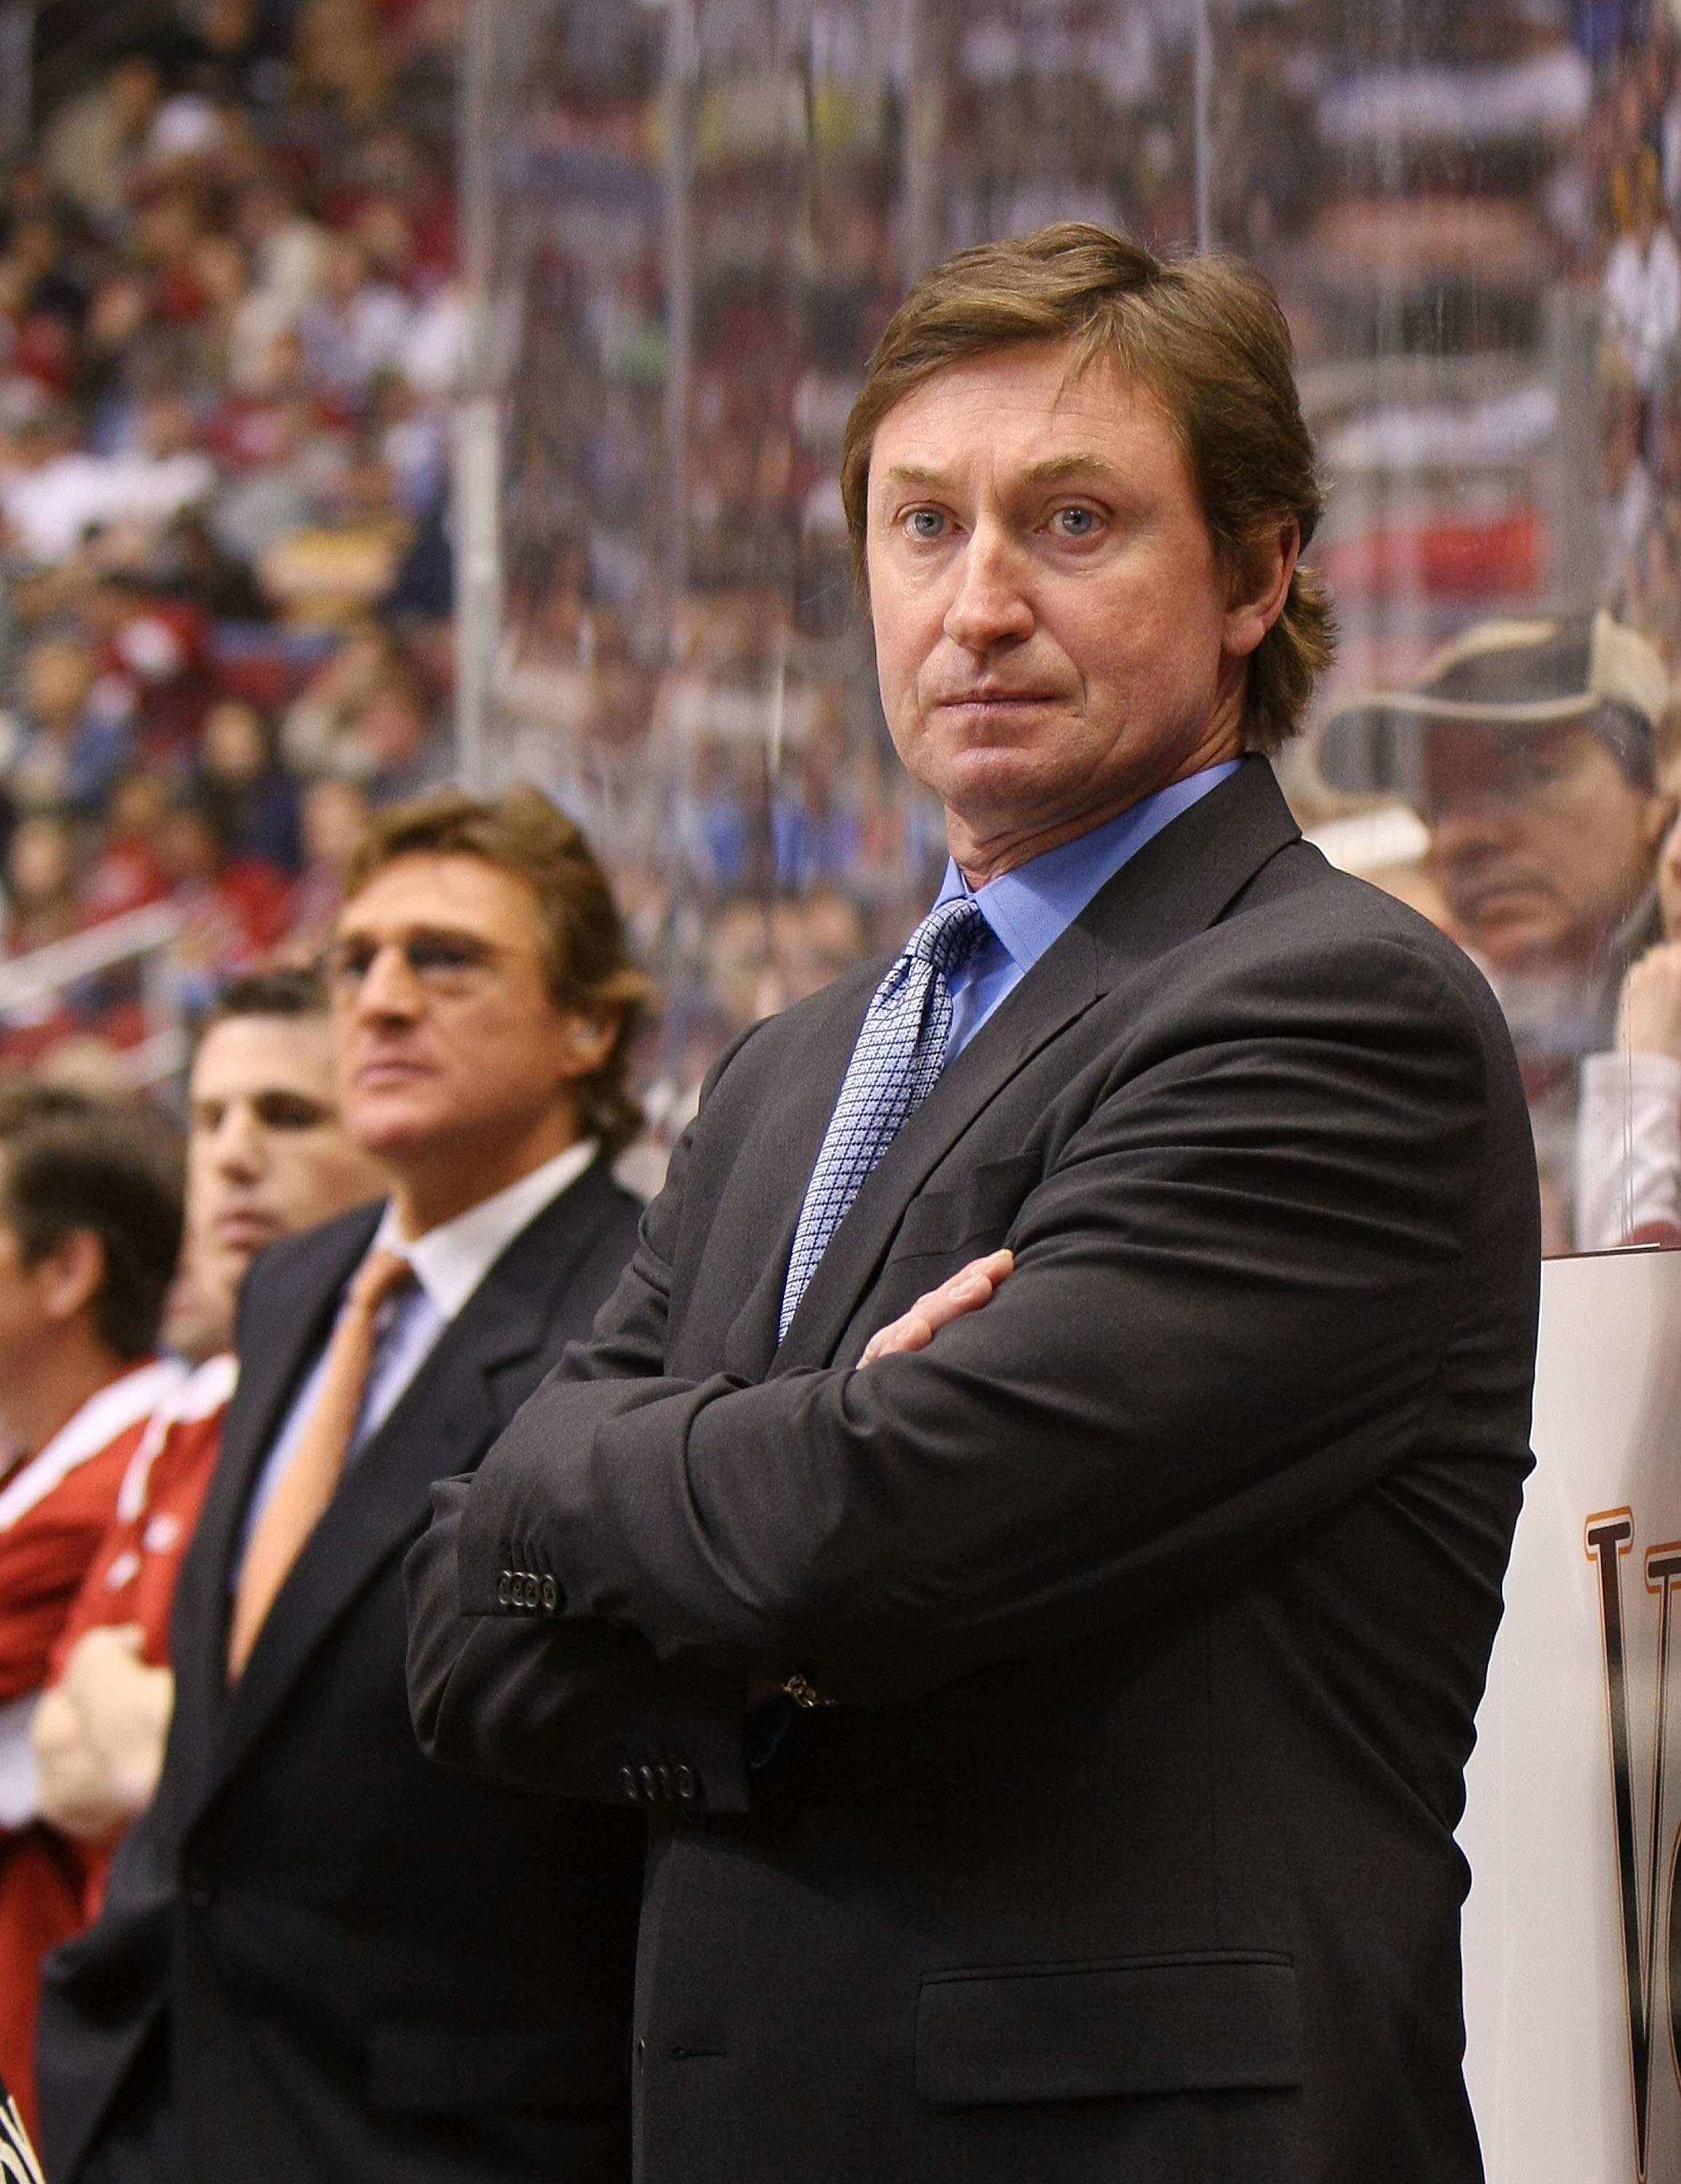 GLENDALE, AZ - FEBRUARY 28:  Head Coach Wayne Gretzky of the Phoenix Coyotes manages his team from behind the bench during his game against the St. Louis Blues on February 28, 2009 at the Jobing.com Arena in Glendale, Arizona.  (Photo by Bruce Bennett/Get